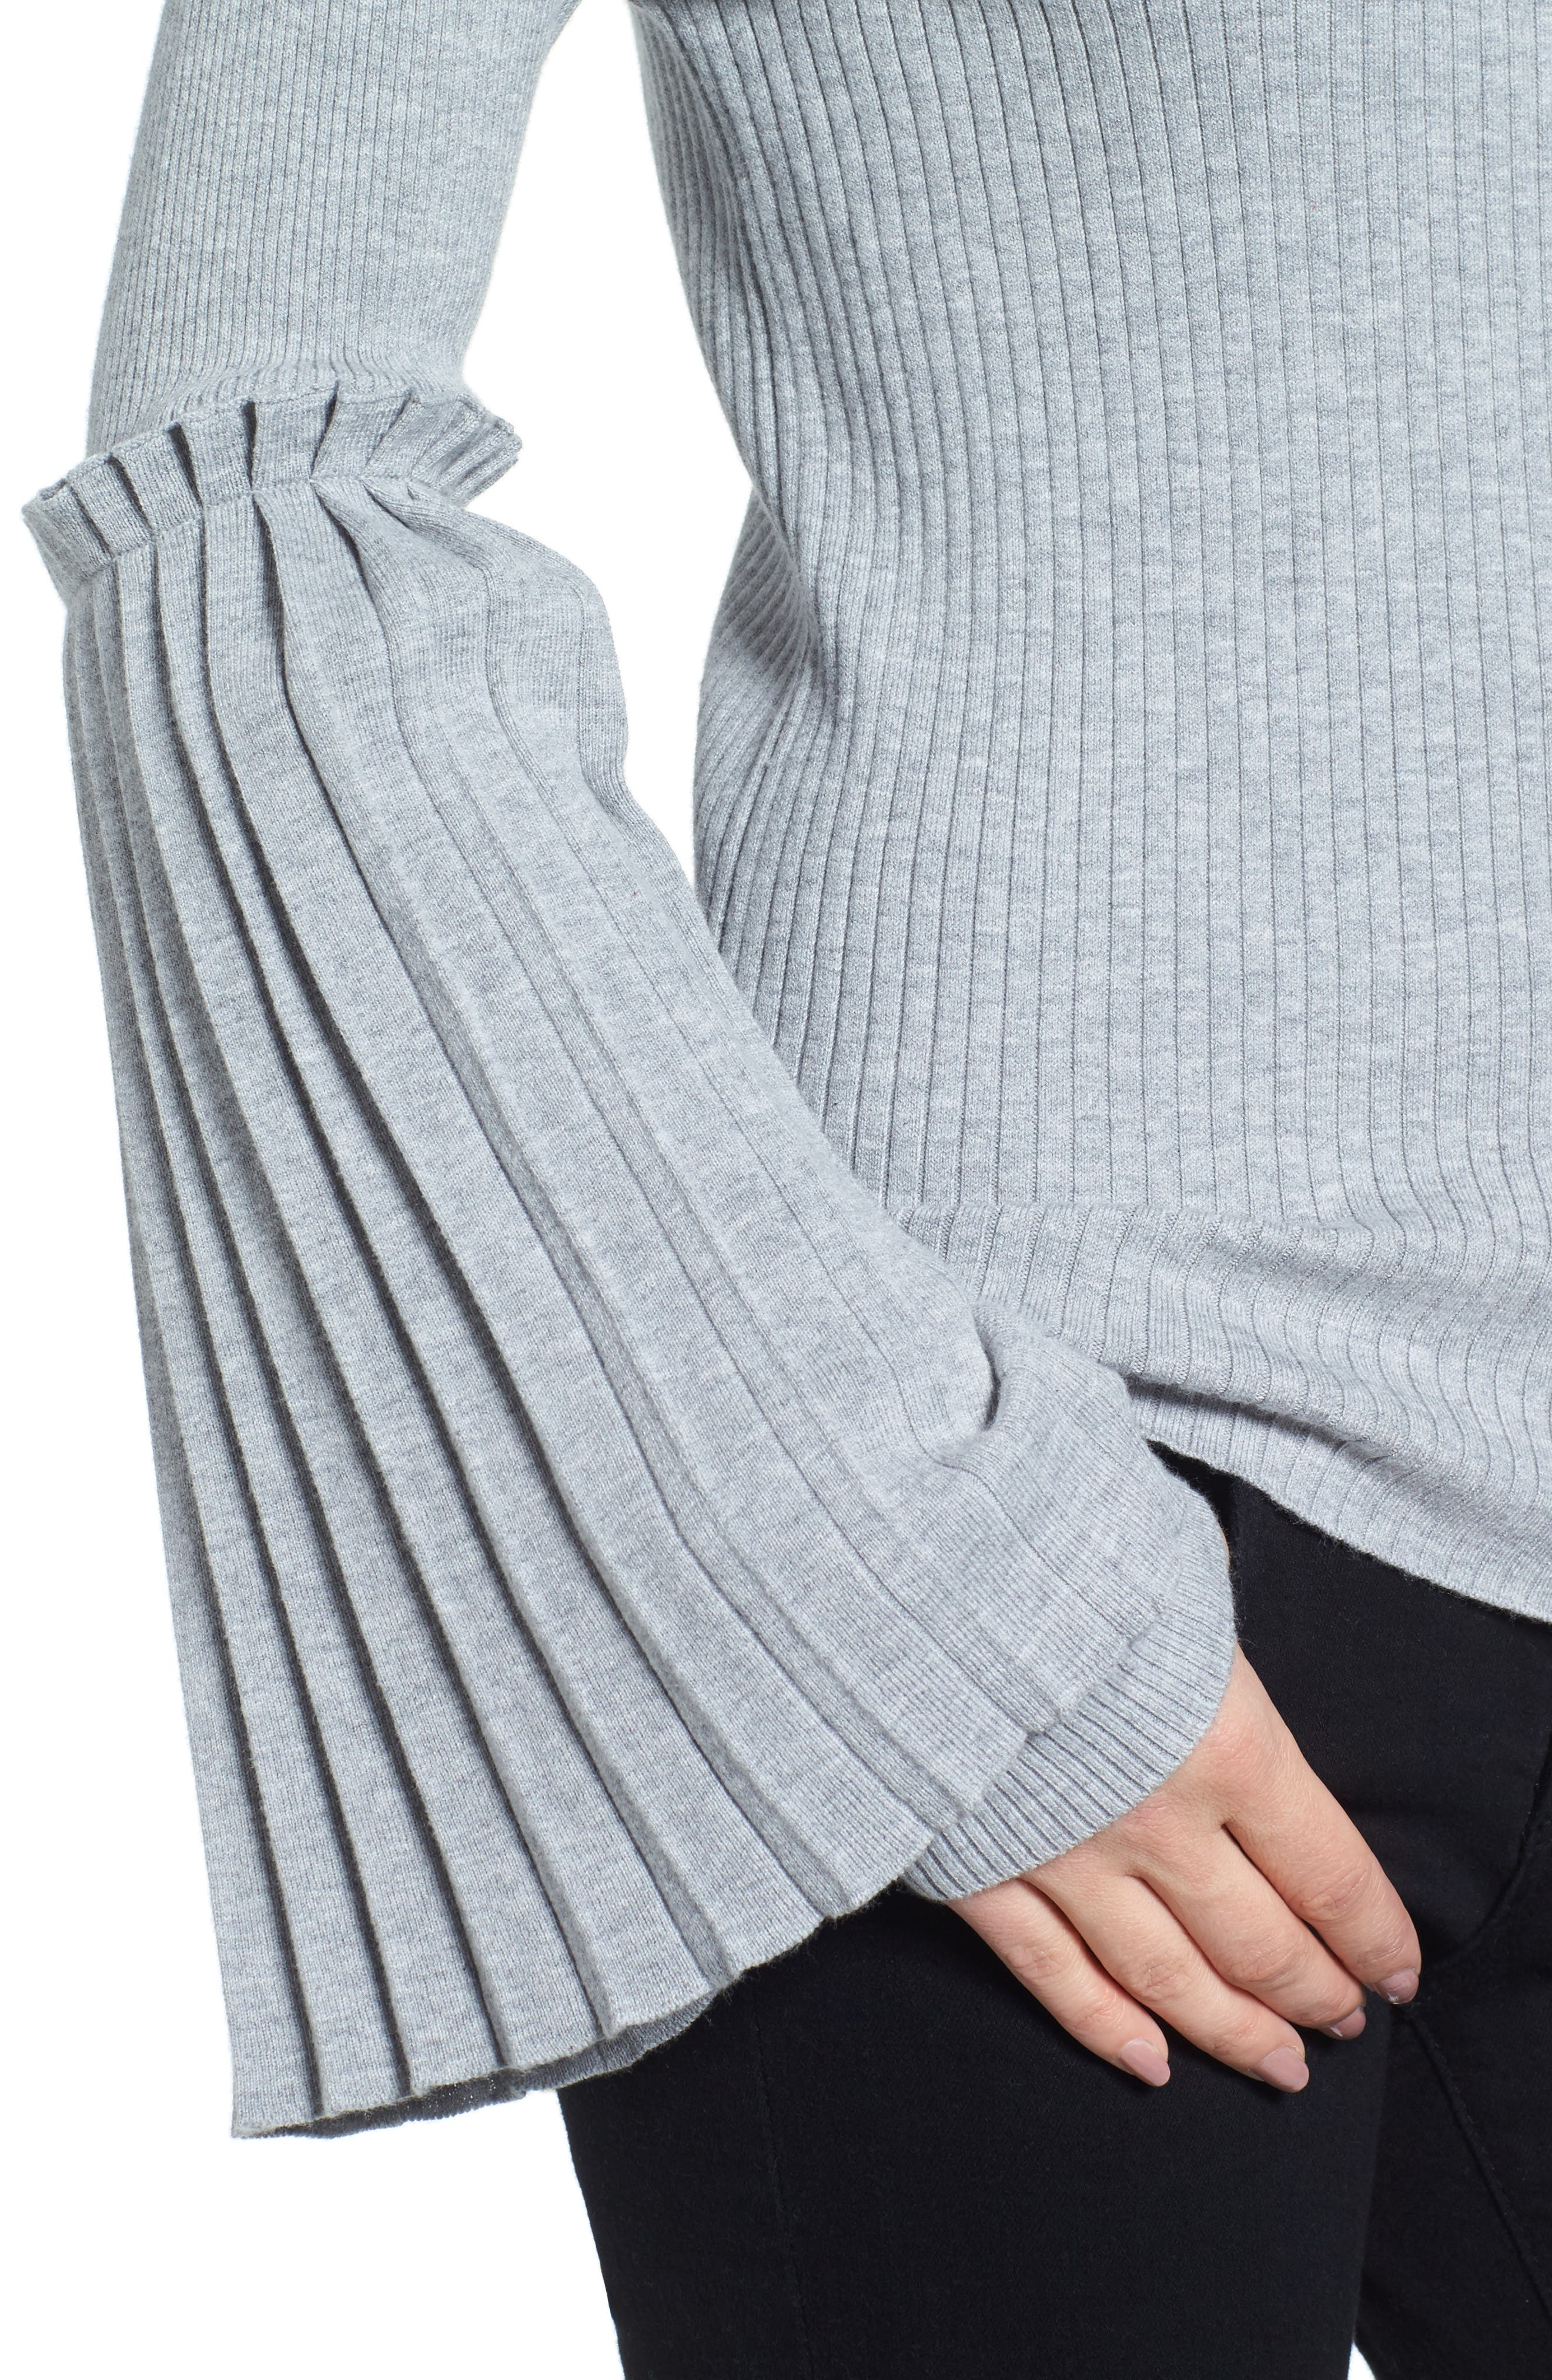 Bell Sleeve Sweater,                             Alternate thumbnail 4, color,                             050